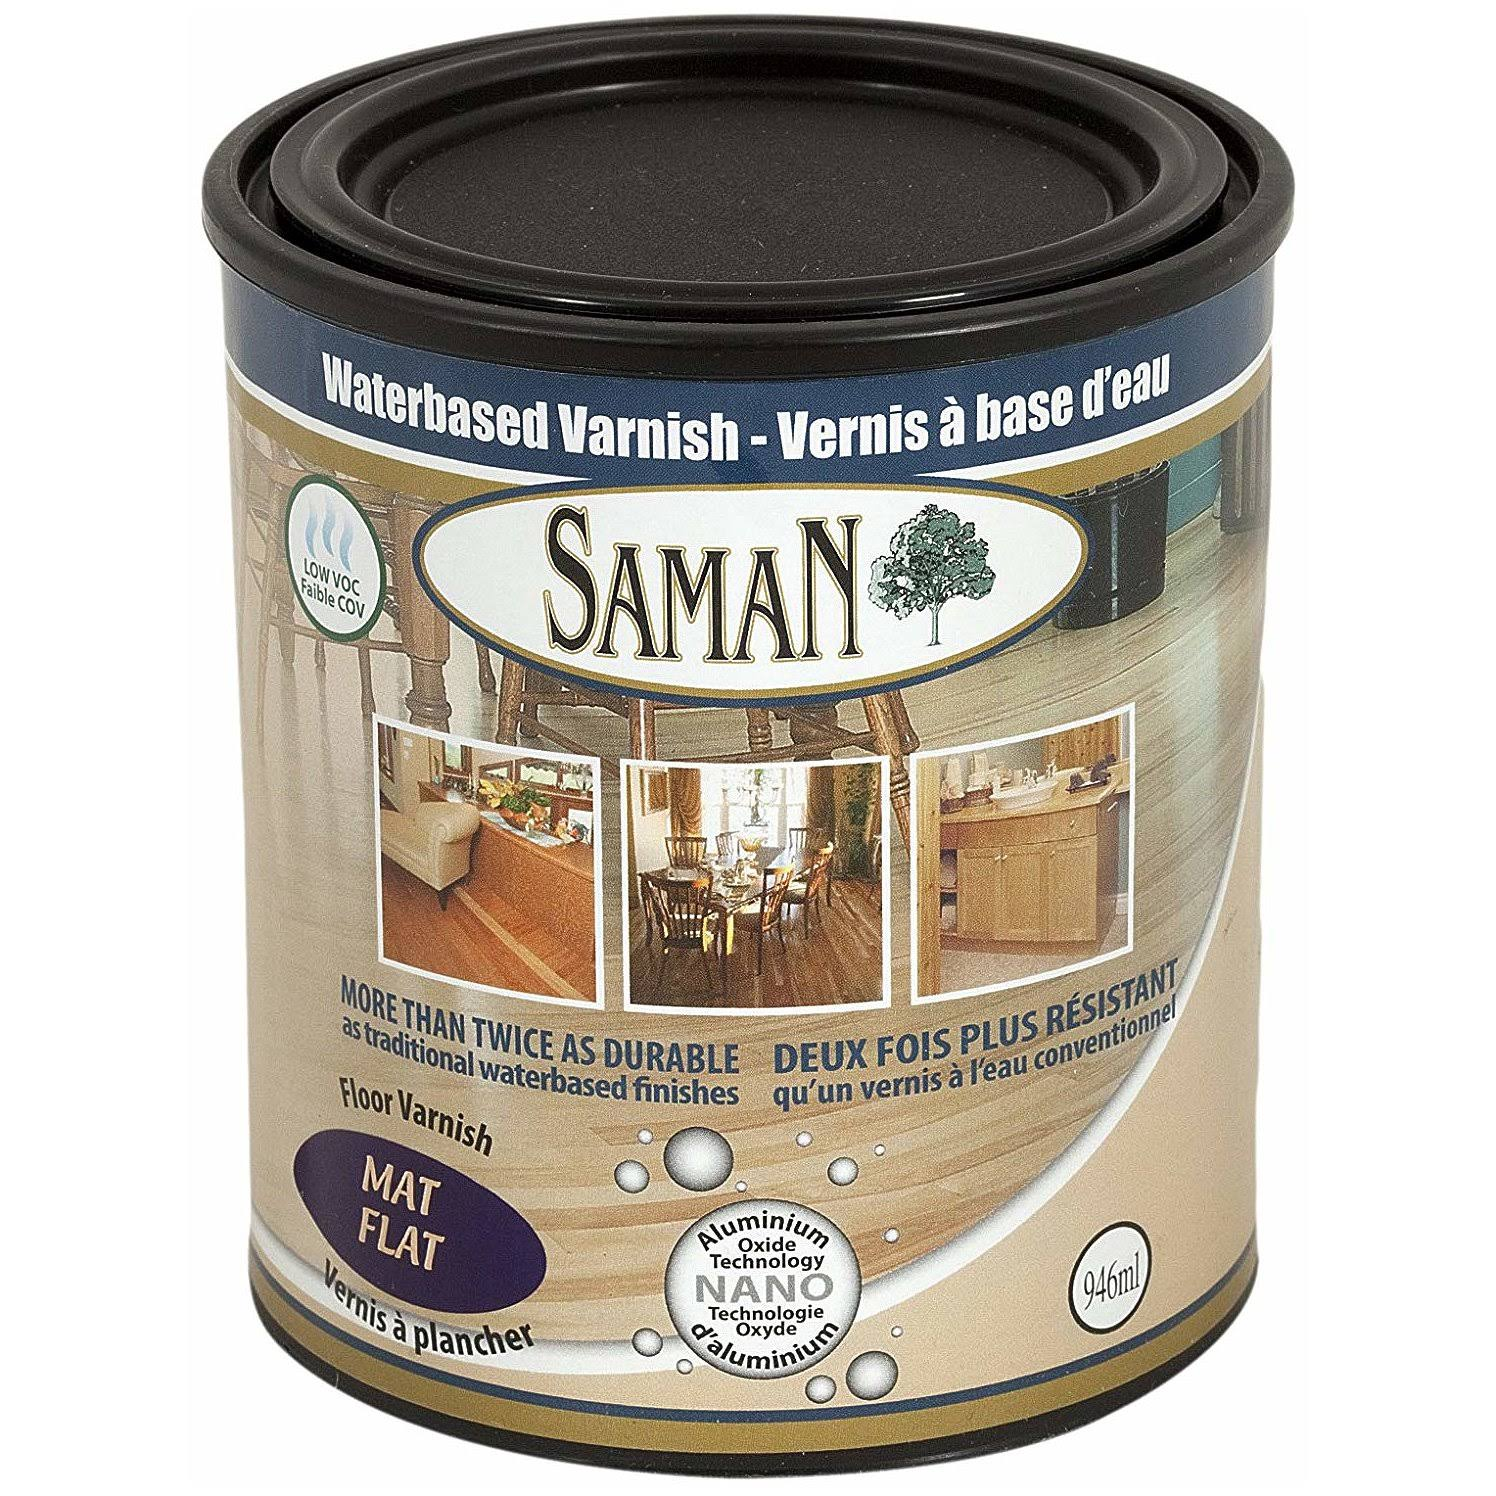 SamaN Interior Water Based Flat Varnish with Aluminum Oxide - 1qt